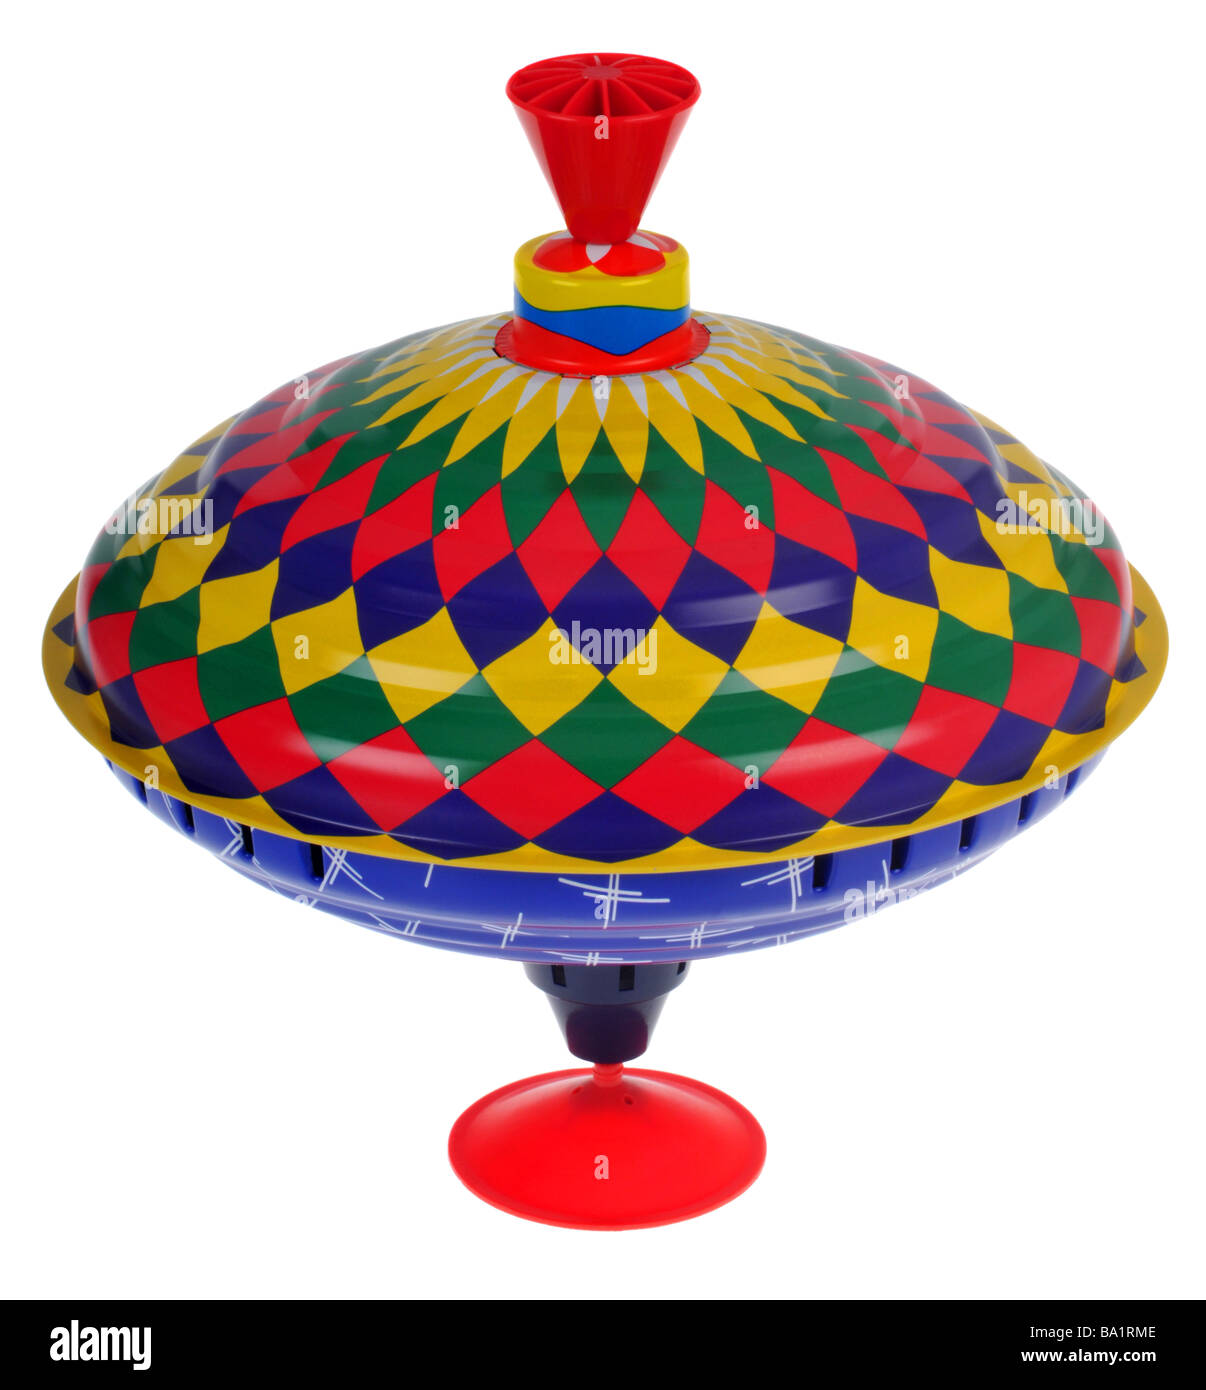 """Spinning Top"" toy - Stock Image"